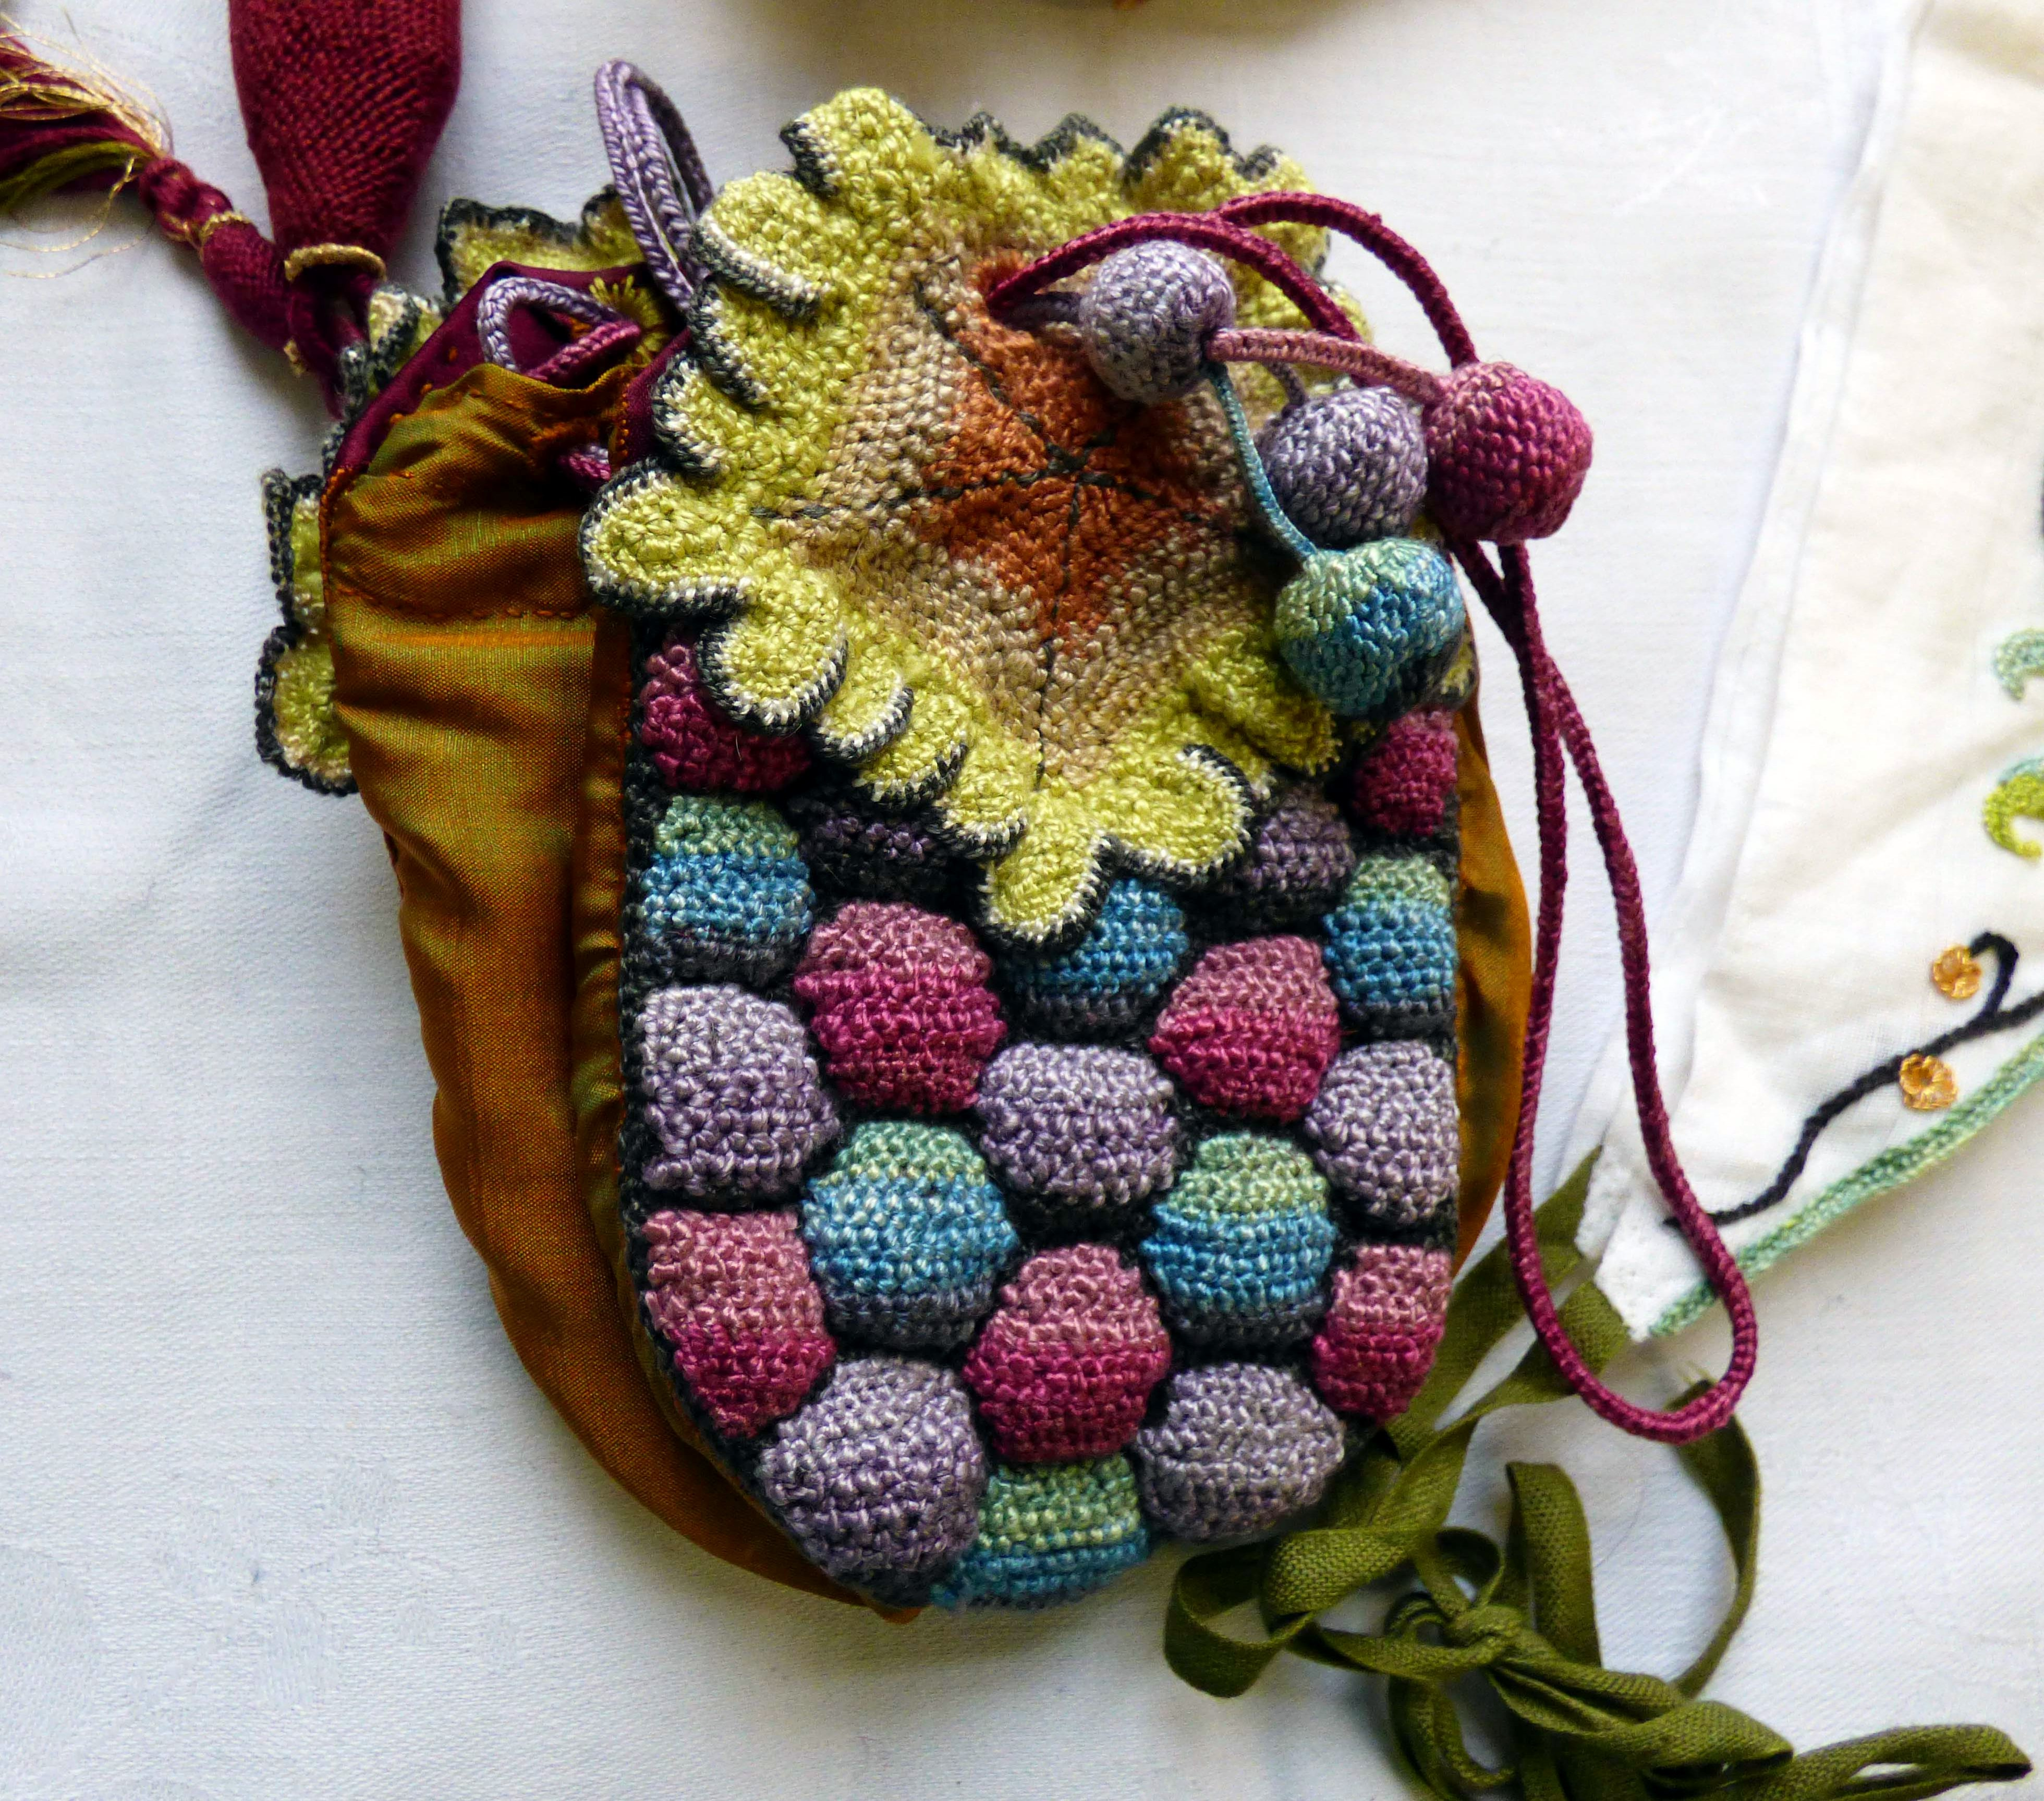 embroidered purse by Carolyn  Richardson, Embroidery of the Jacobean era, Jan 2019